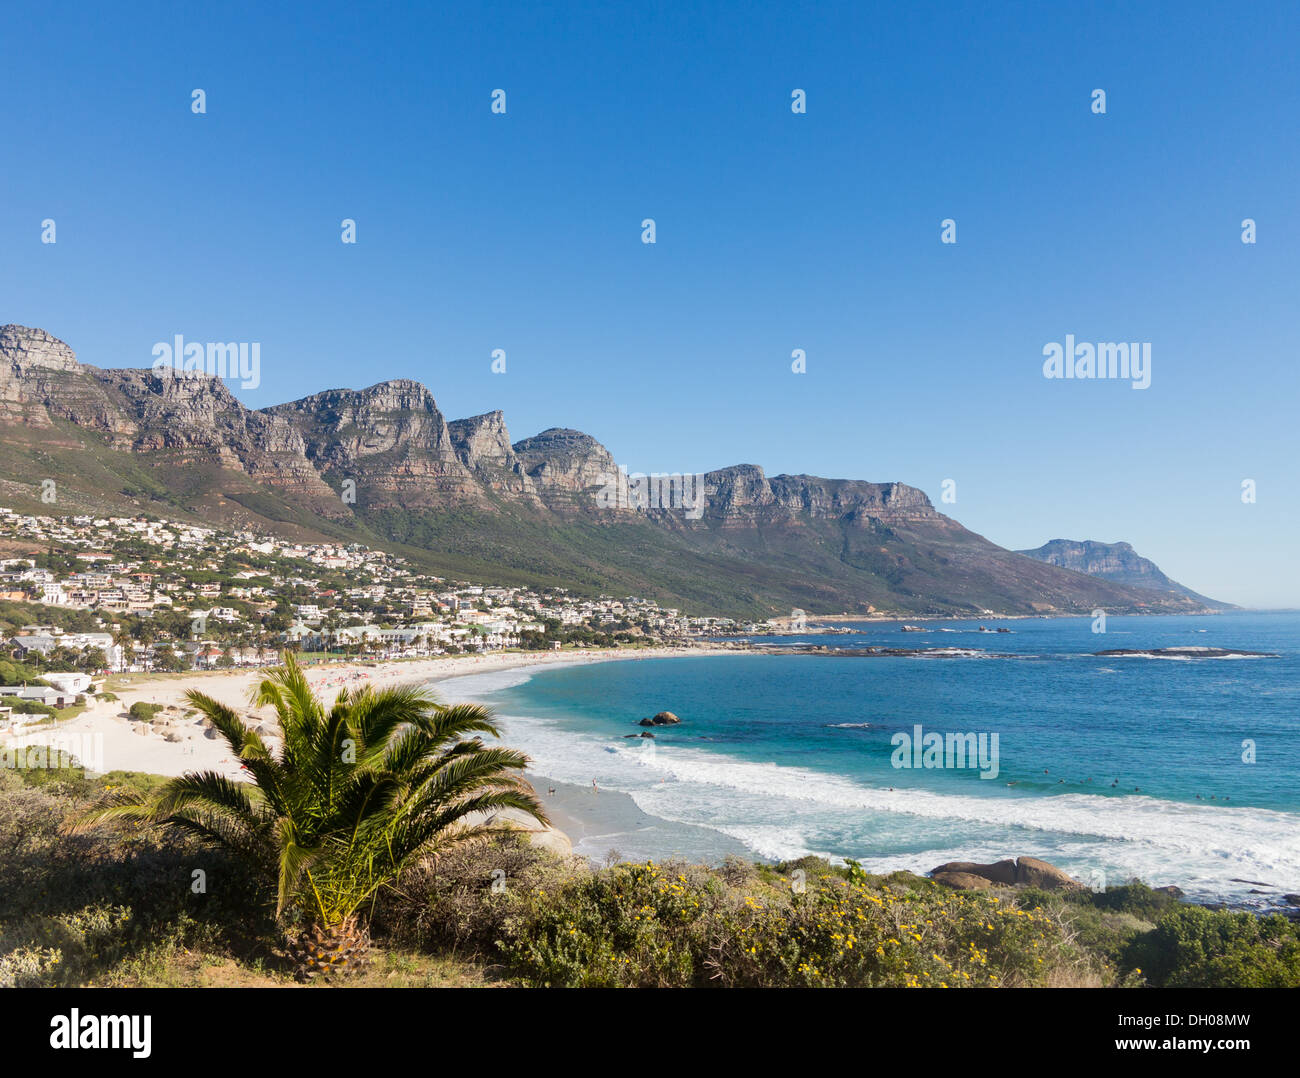 Beach at Camps Bay Cape Town with Table Mountain in background, South Africa coast - Stock Image